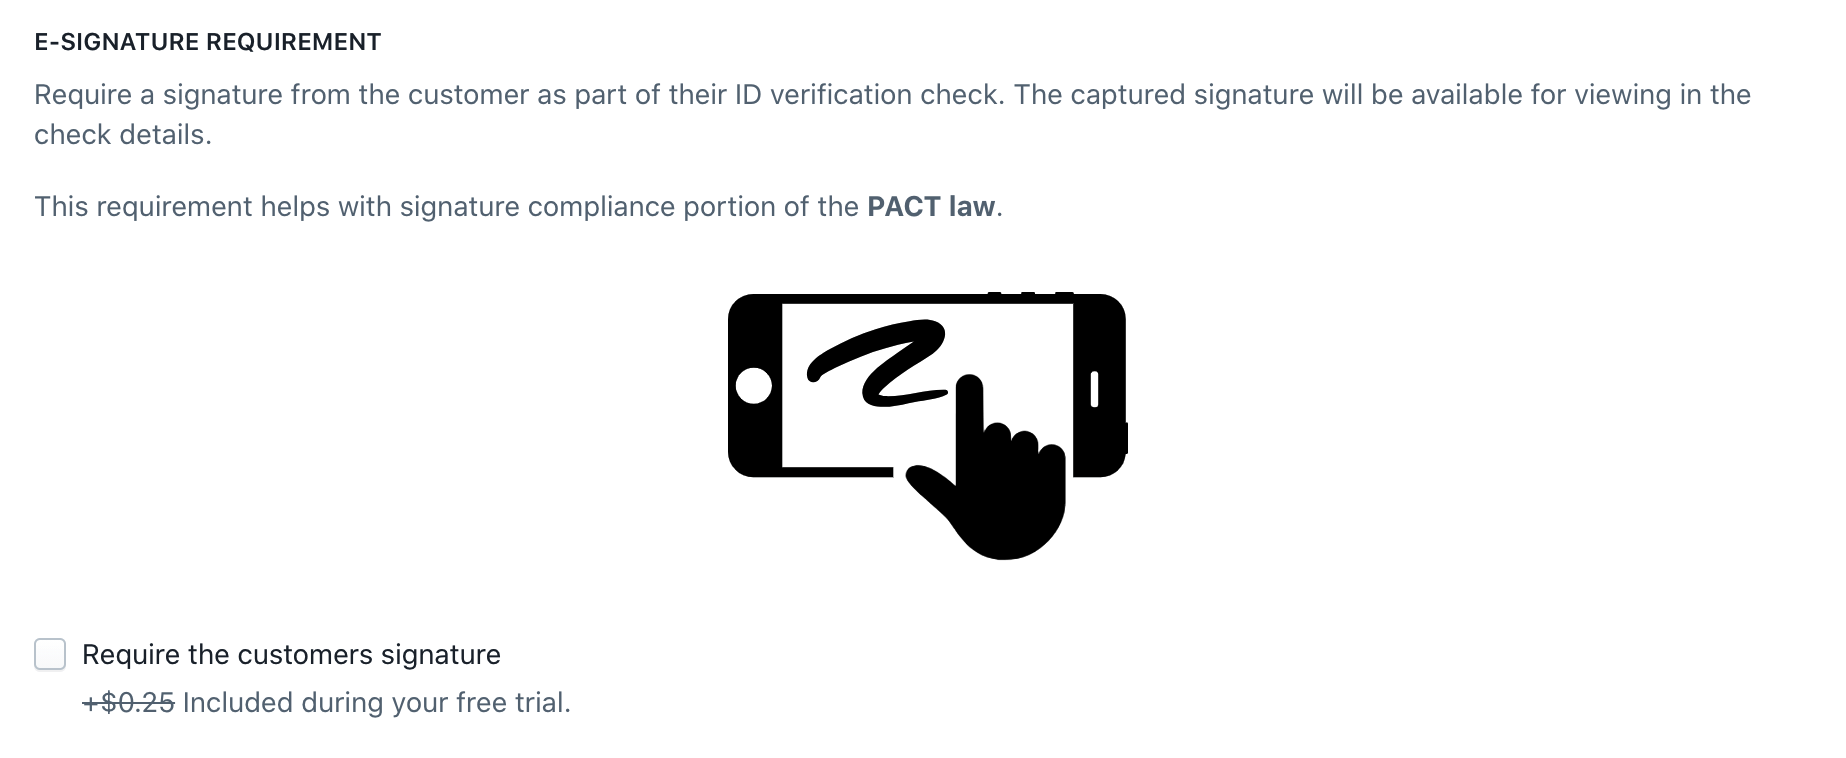 Enabling the signature requirement in the new check page